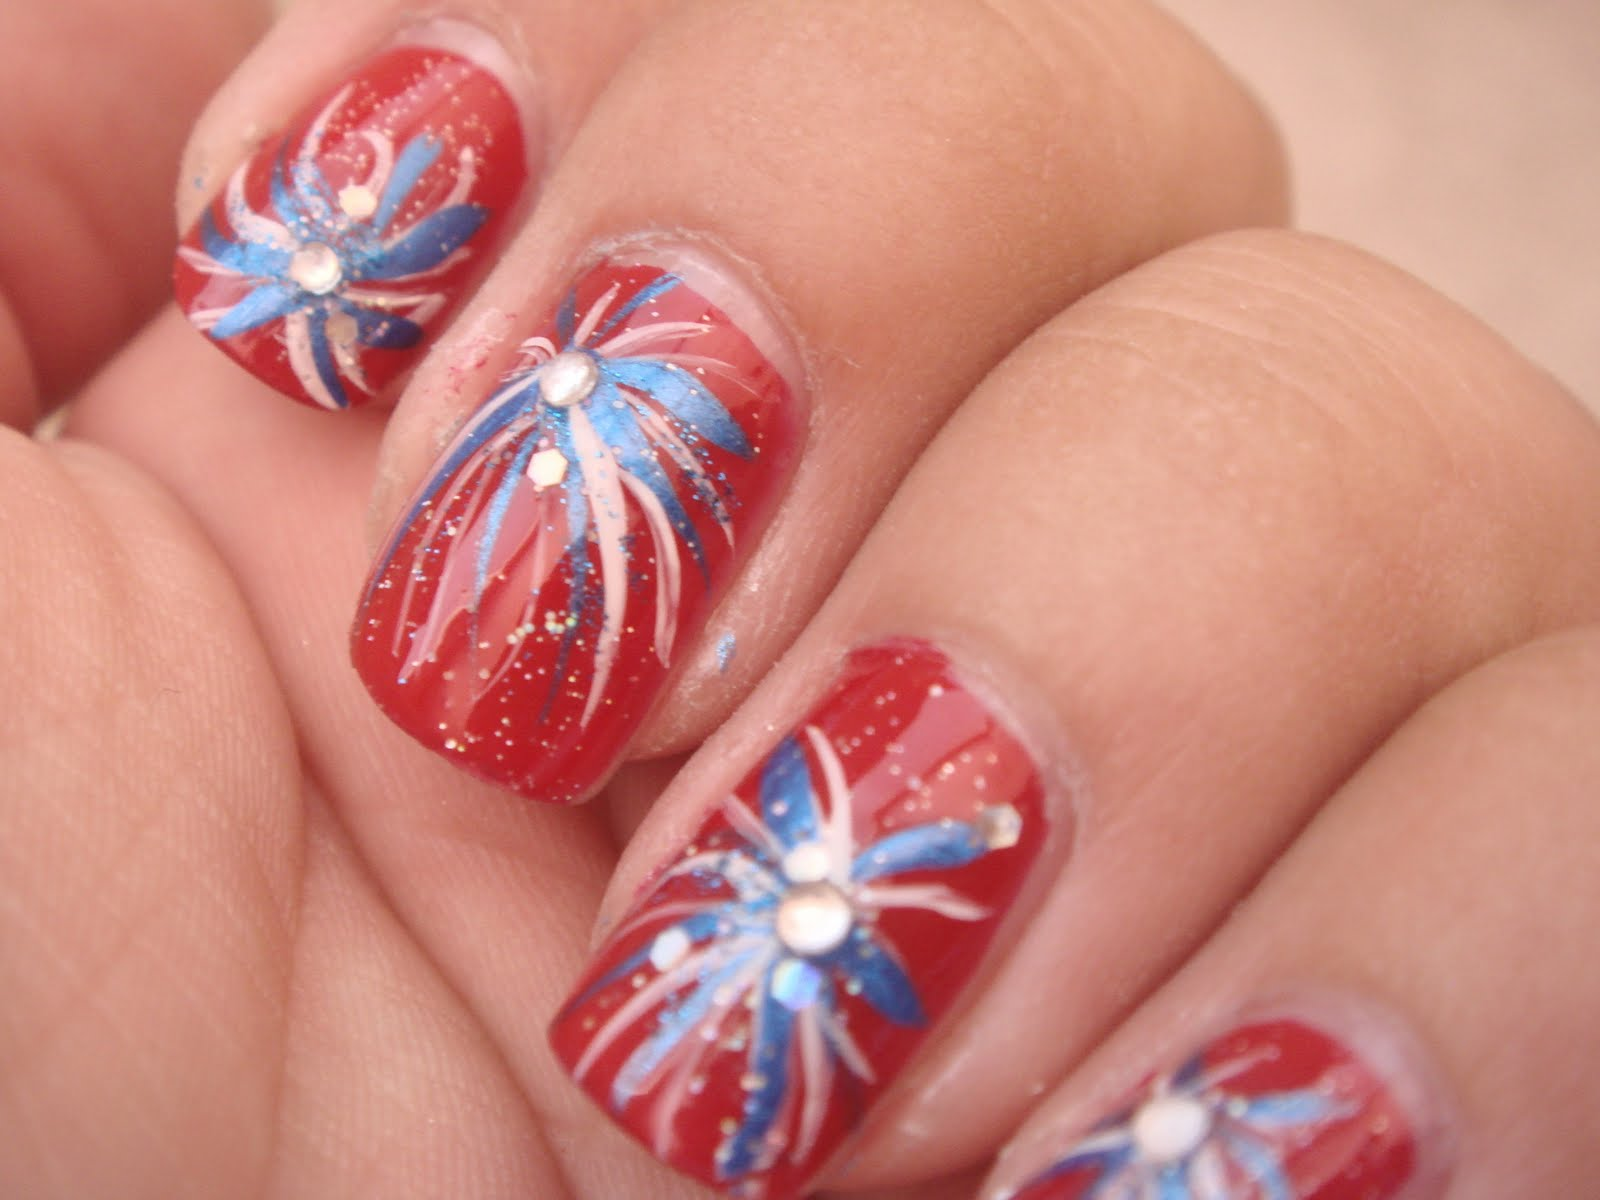 All Nail and Cosmetics: 4th of July Nails!